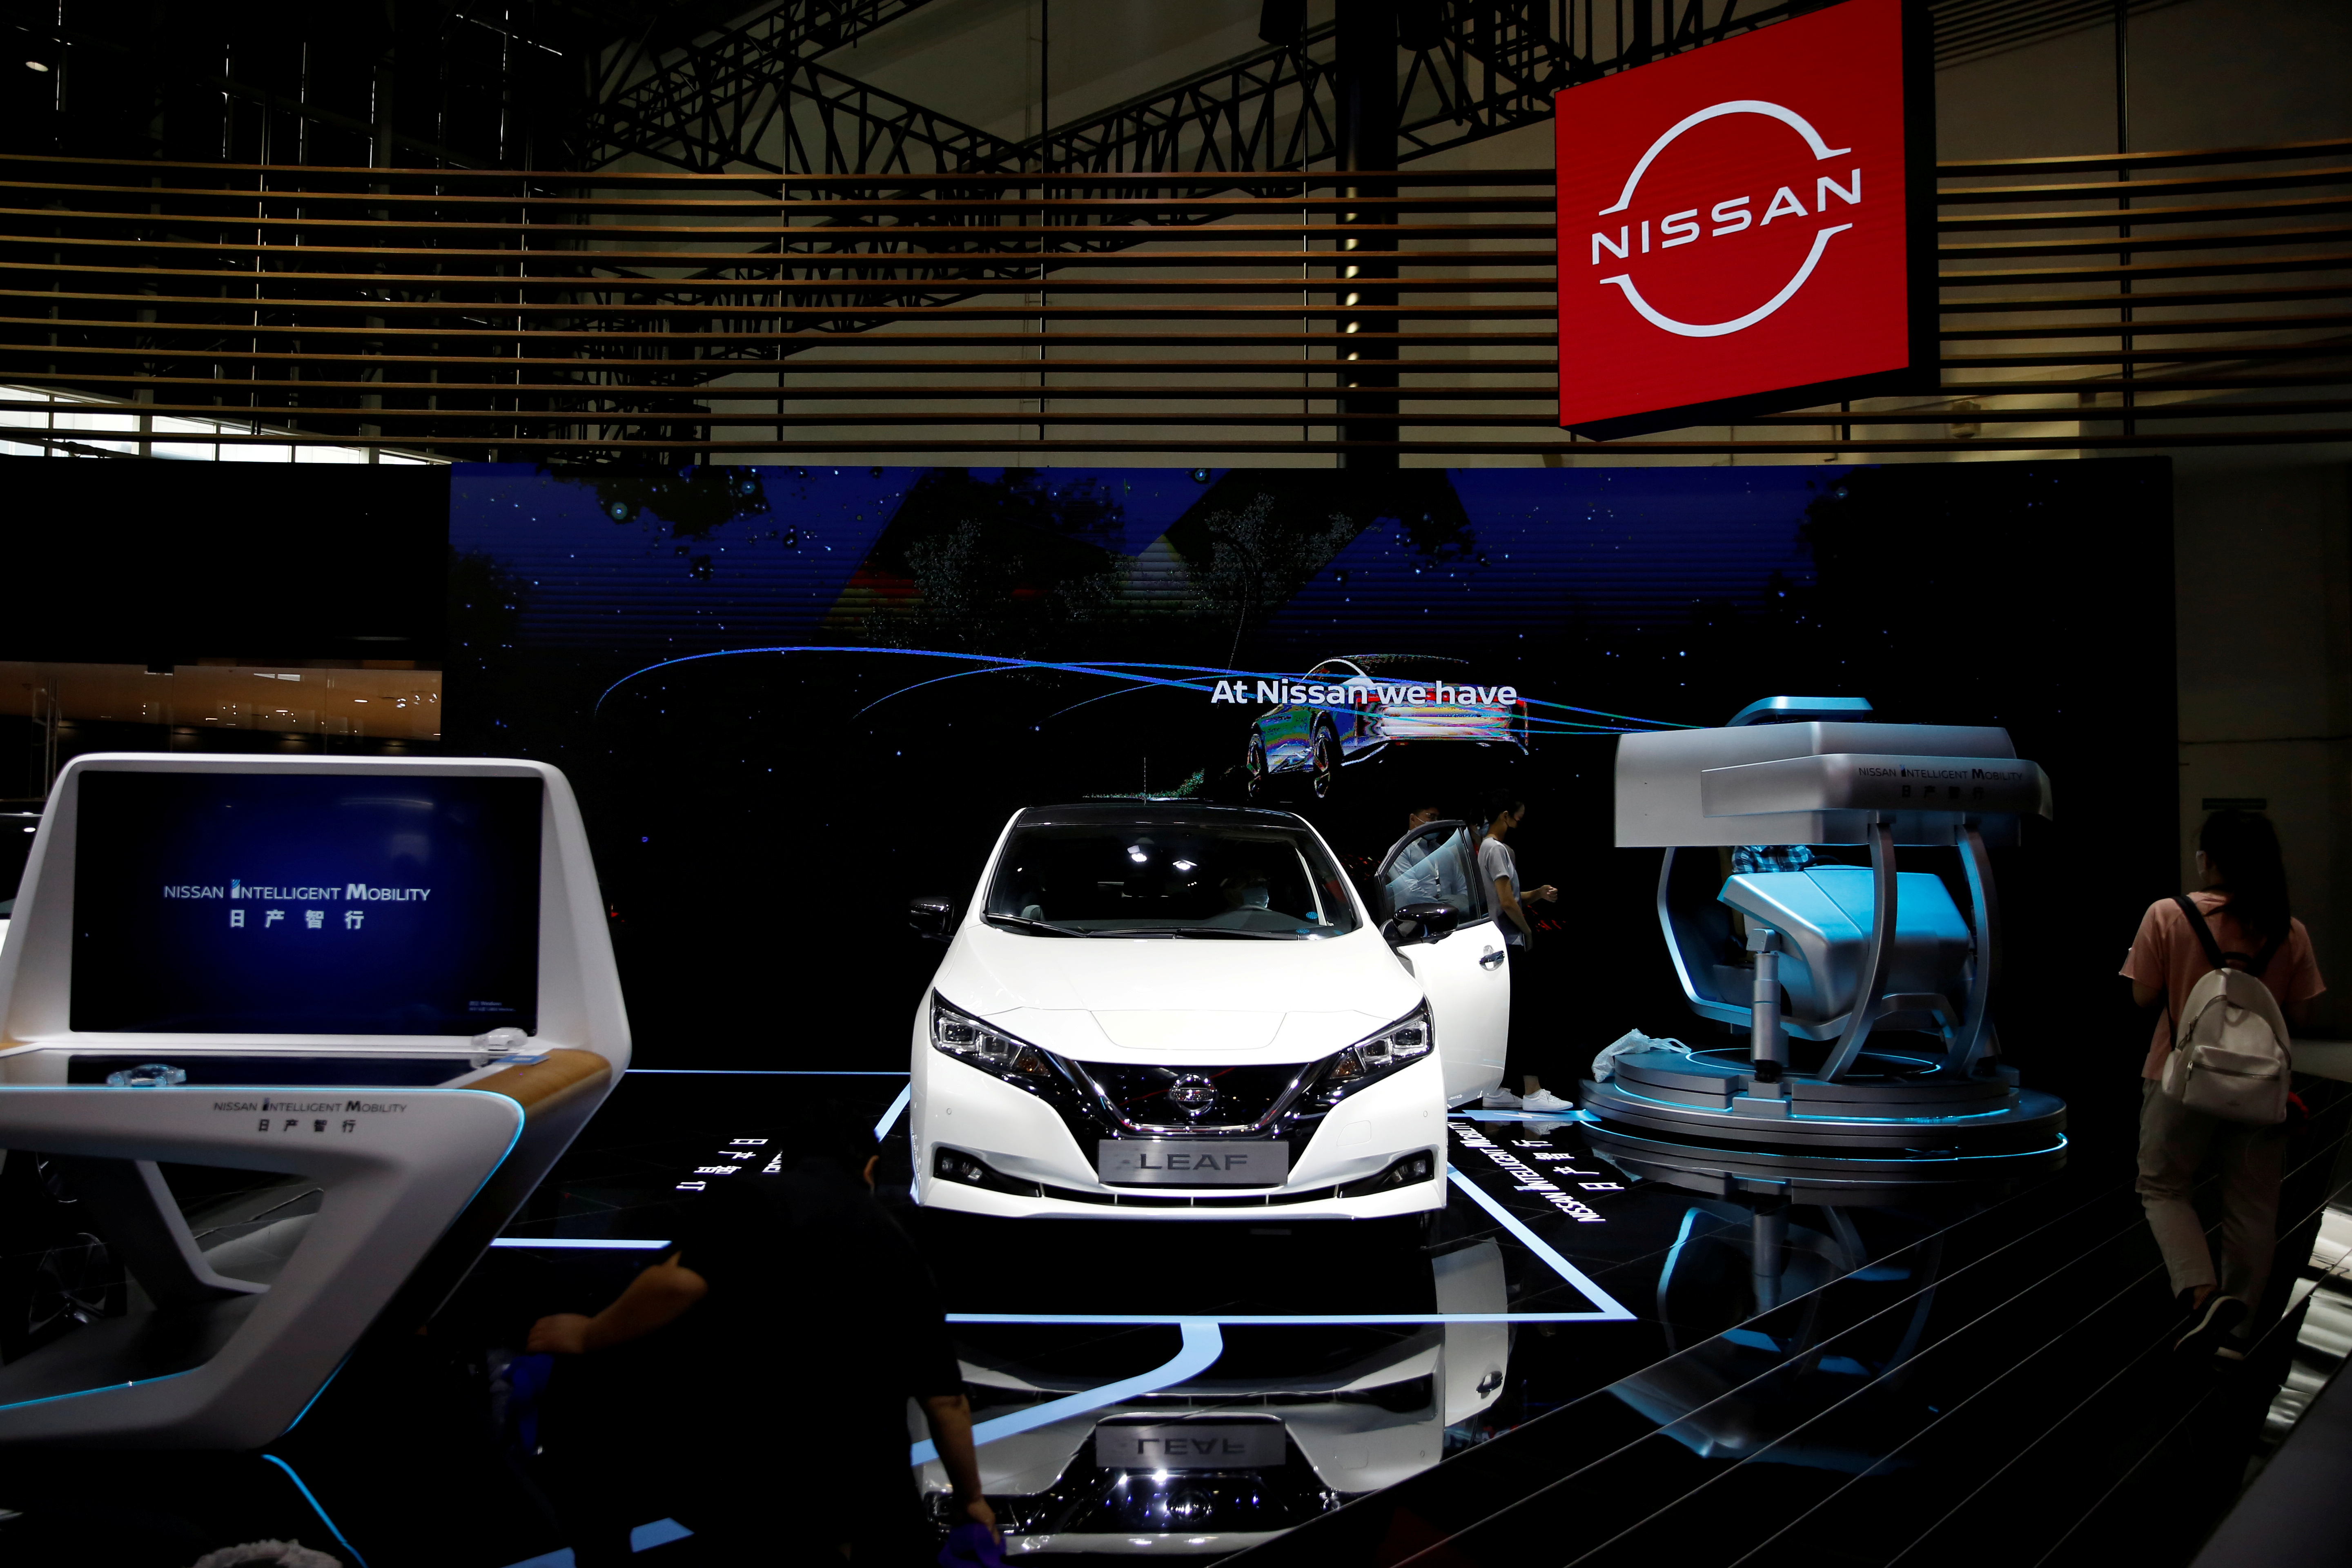 Nissan's electric vehicle (EV) Leaf is displayed at the Nissan's booth at the Beijing International Automotive Exhibition, or Auto China show, in Beijing, China September 27,  2020. REUTERS/Tingshu Wang